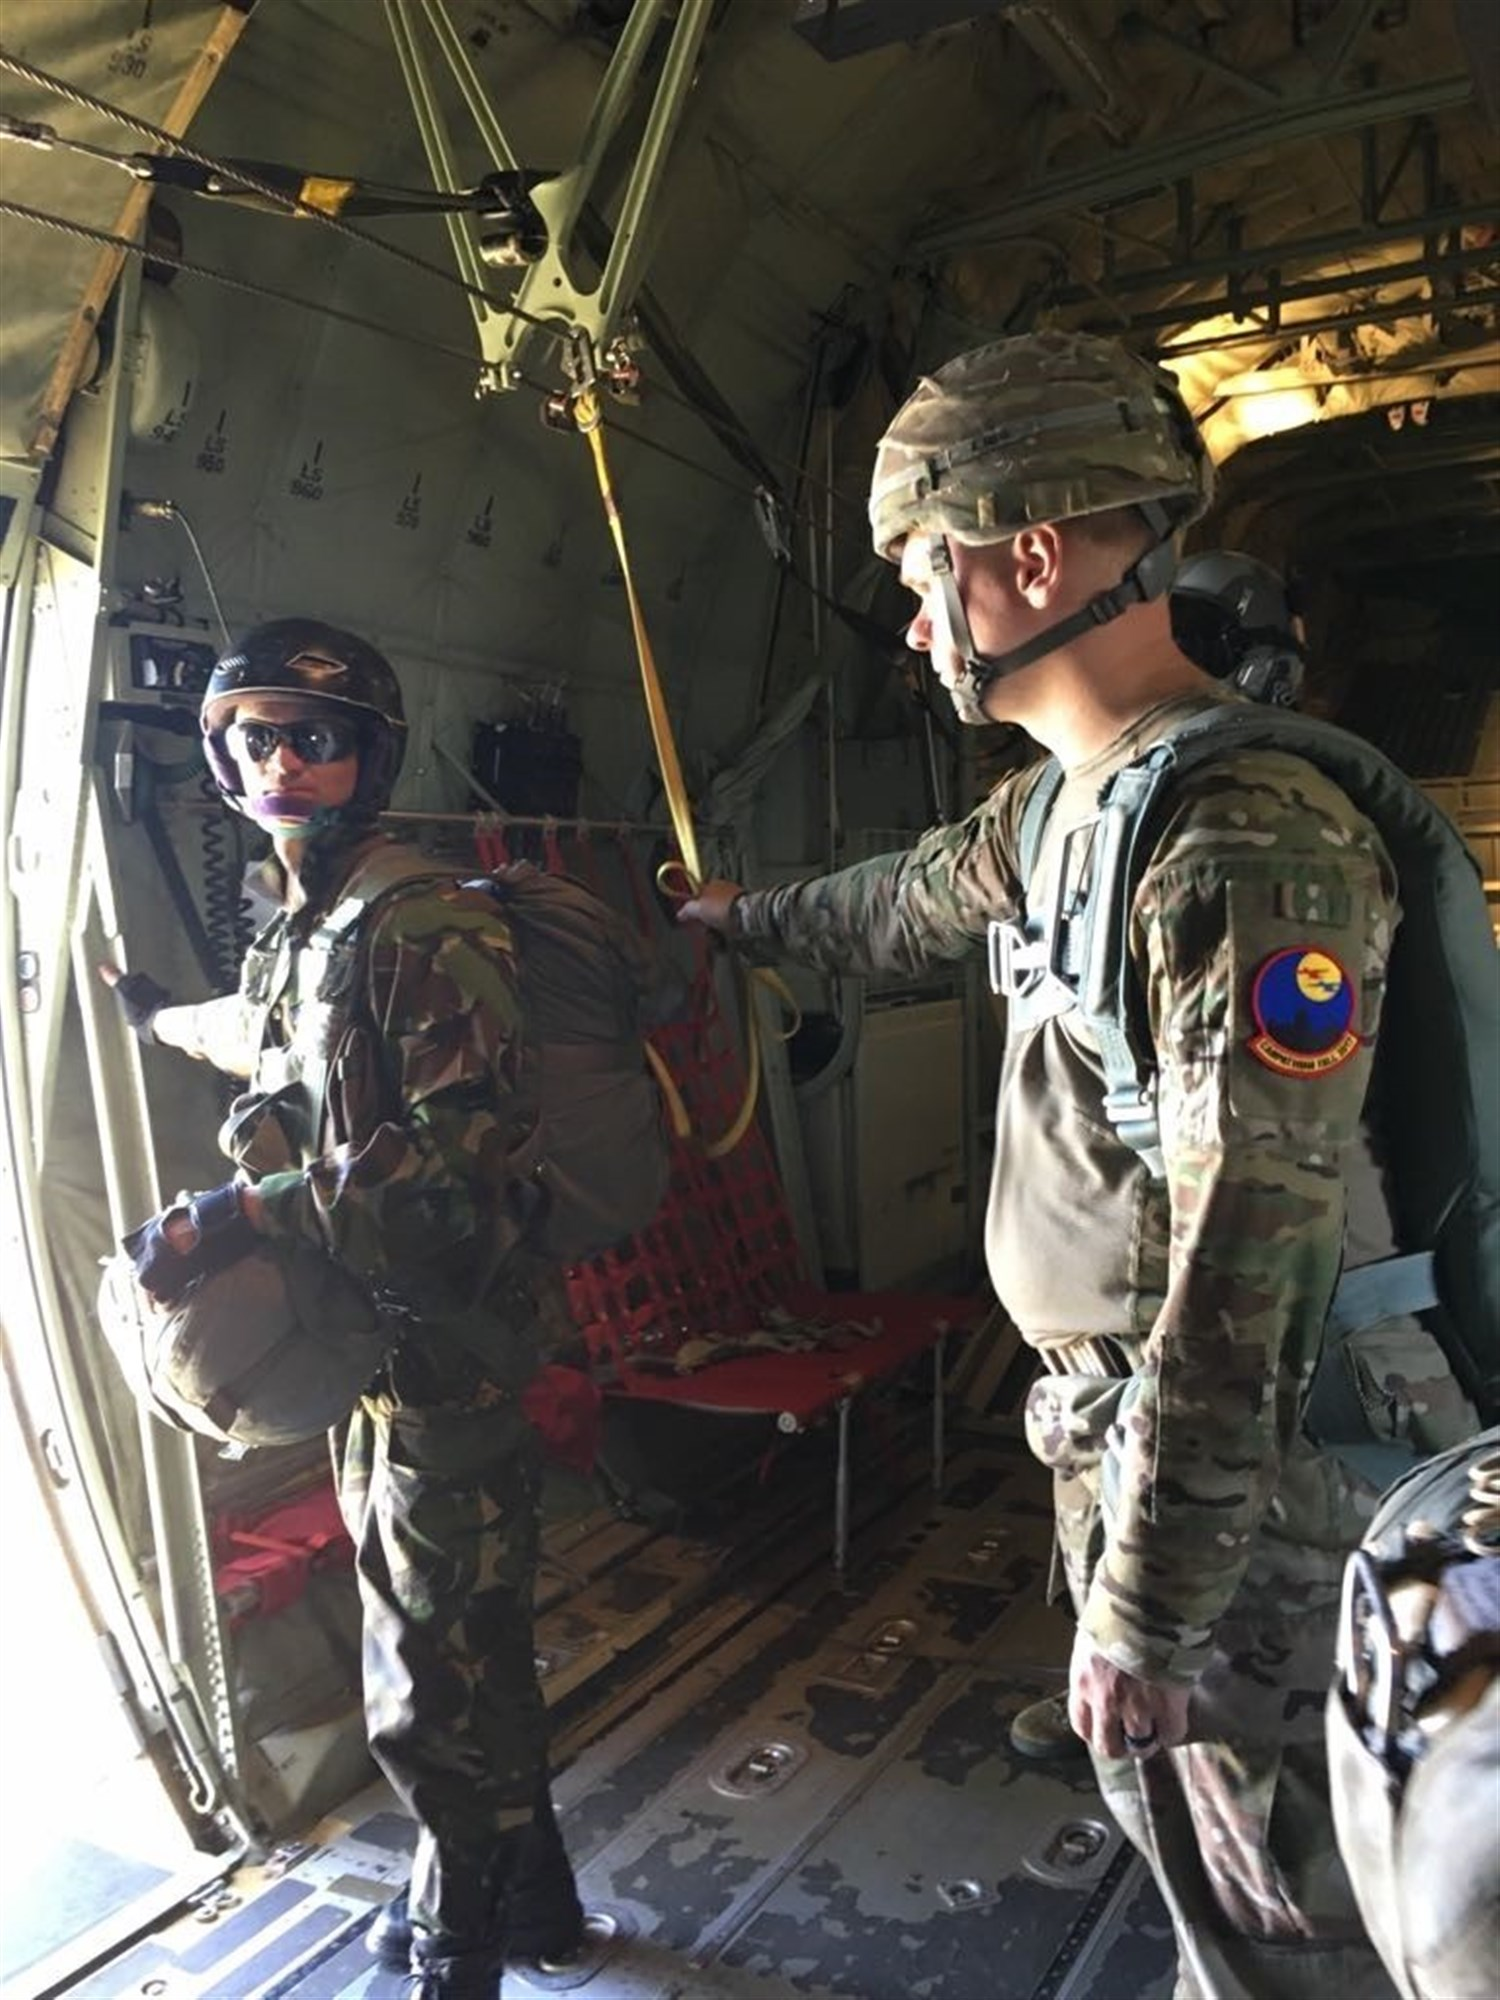 Sgt. Nicholas August performs safety duties as a jumpmaster for Romanian paratroopers while the Romanian jumpmaster checks the aircraft door to ensure the exit is safe. Twelve paratroopers 16th Special Troops Battalion conducted airborne operations alongside more than 220 Romanian paratroopers and jumpmasters.